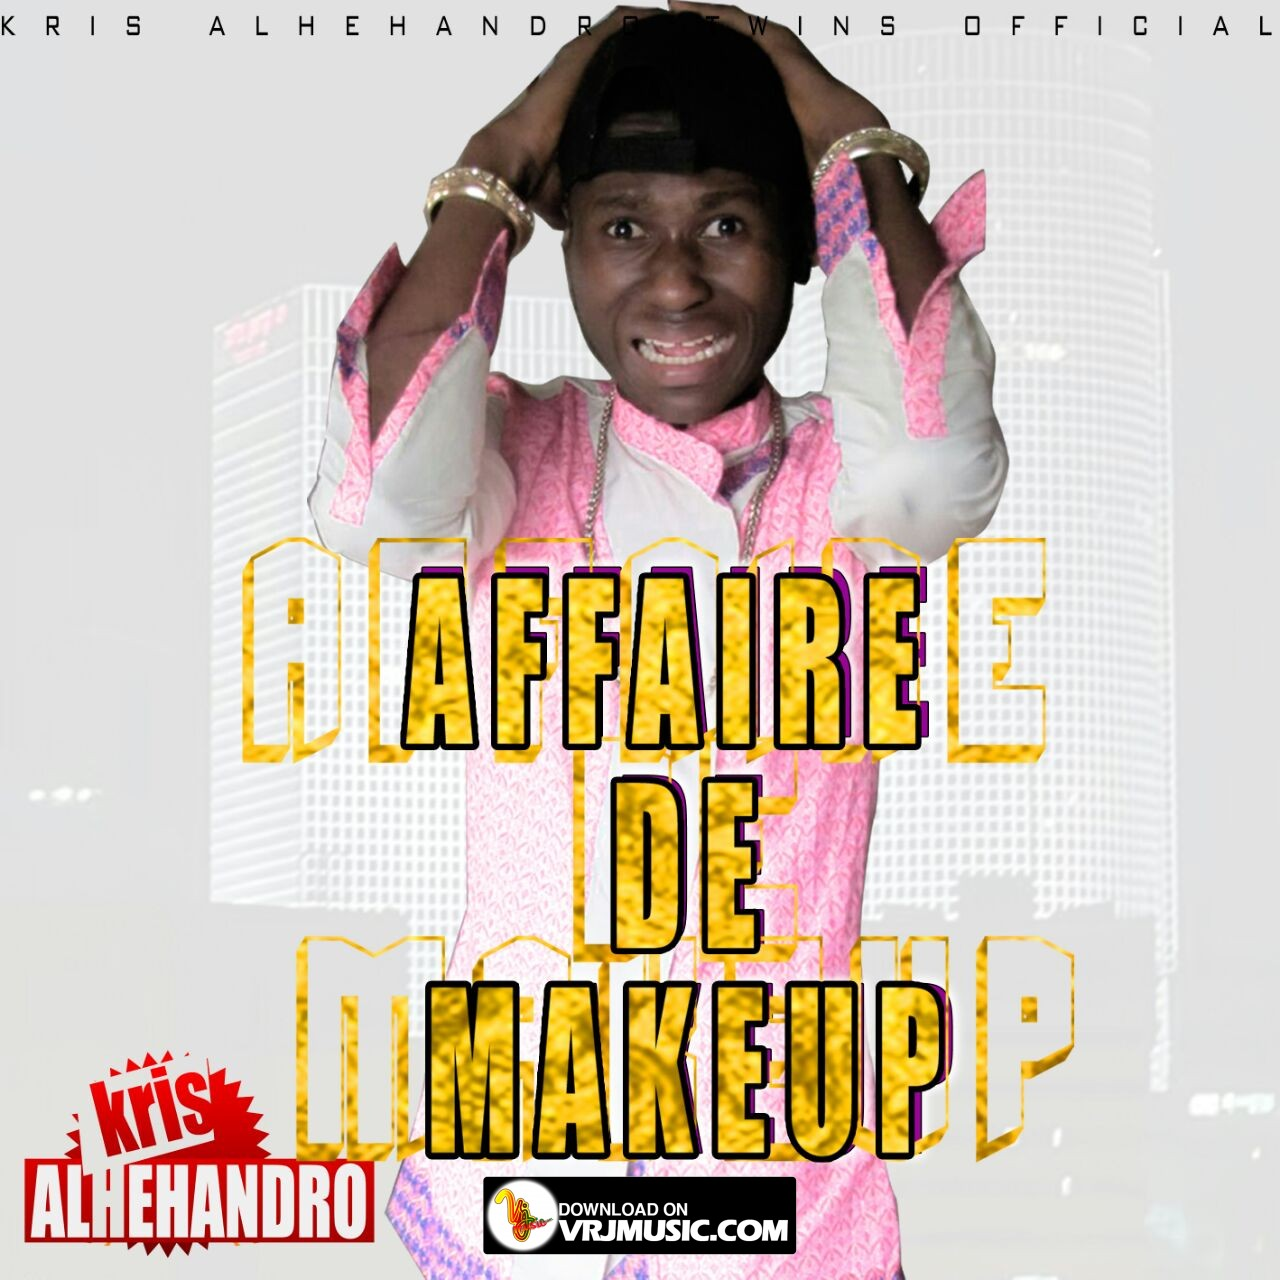 Affaire de Make-Up